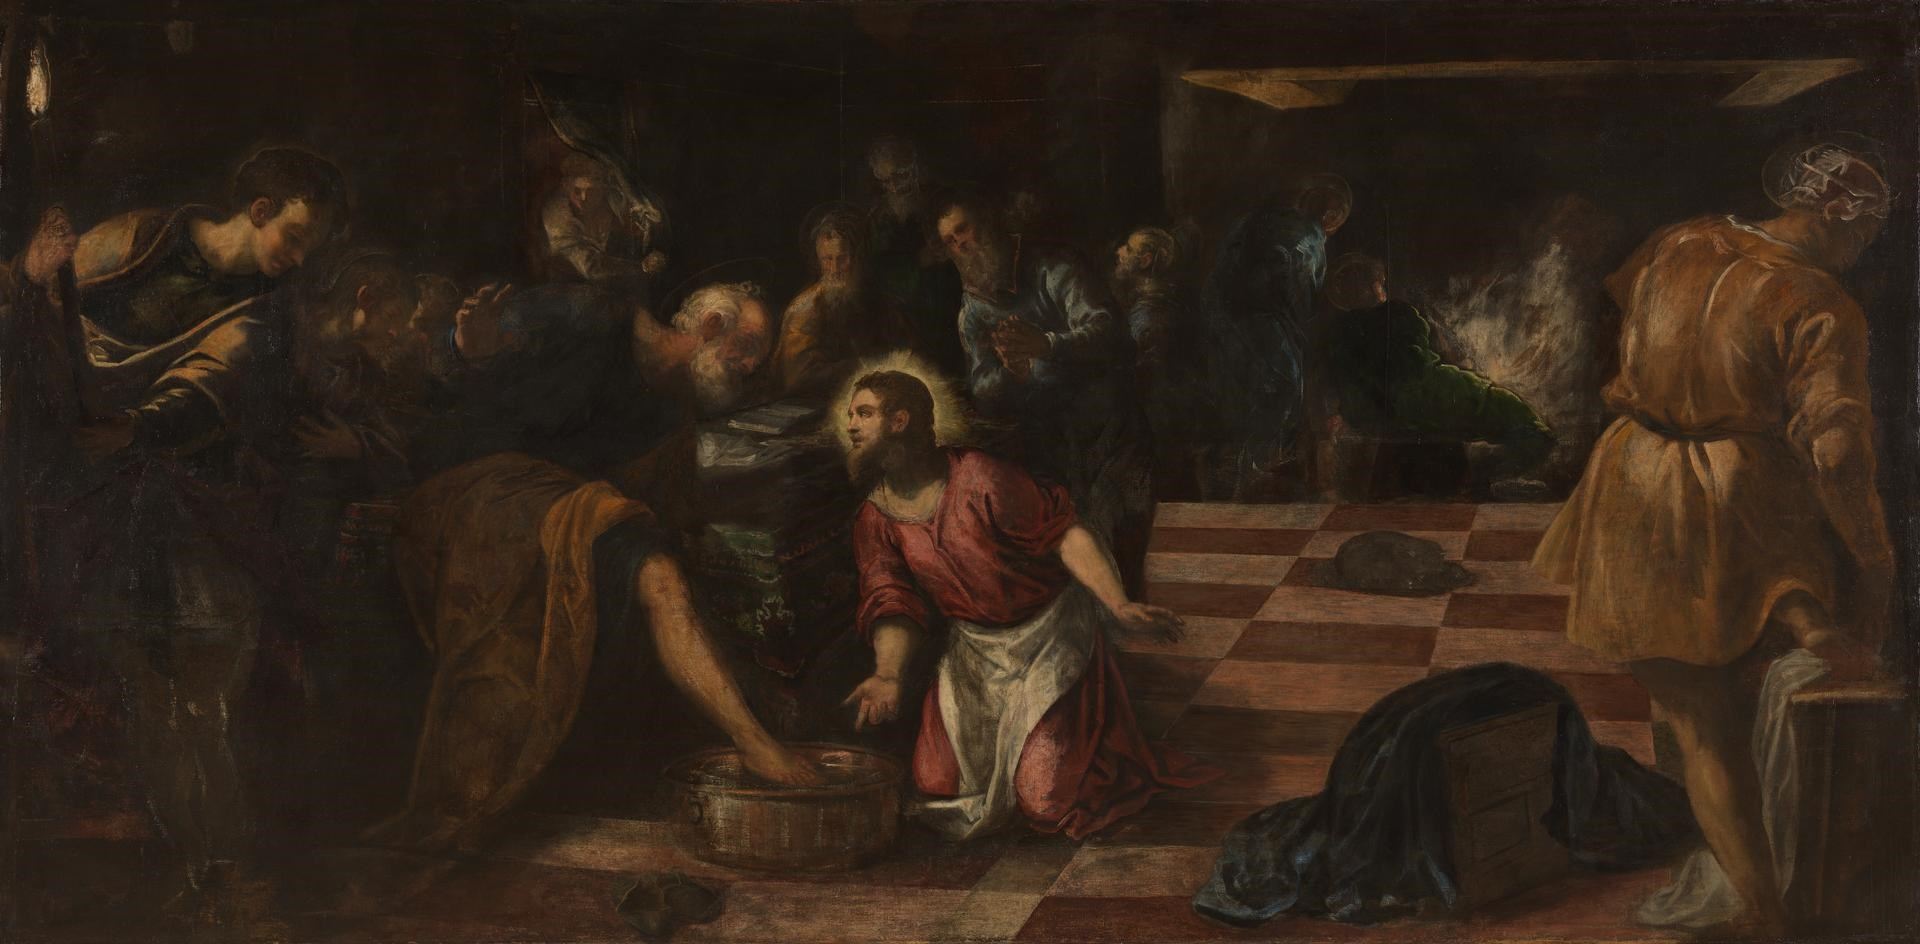 Christ washing the Feet of the Disciples by Jacopo Tintoretto